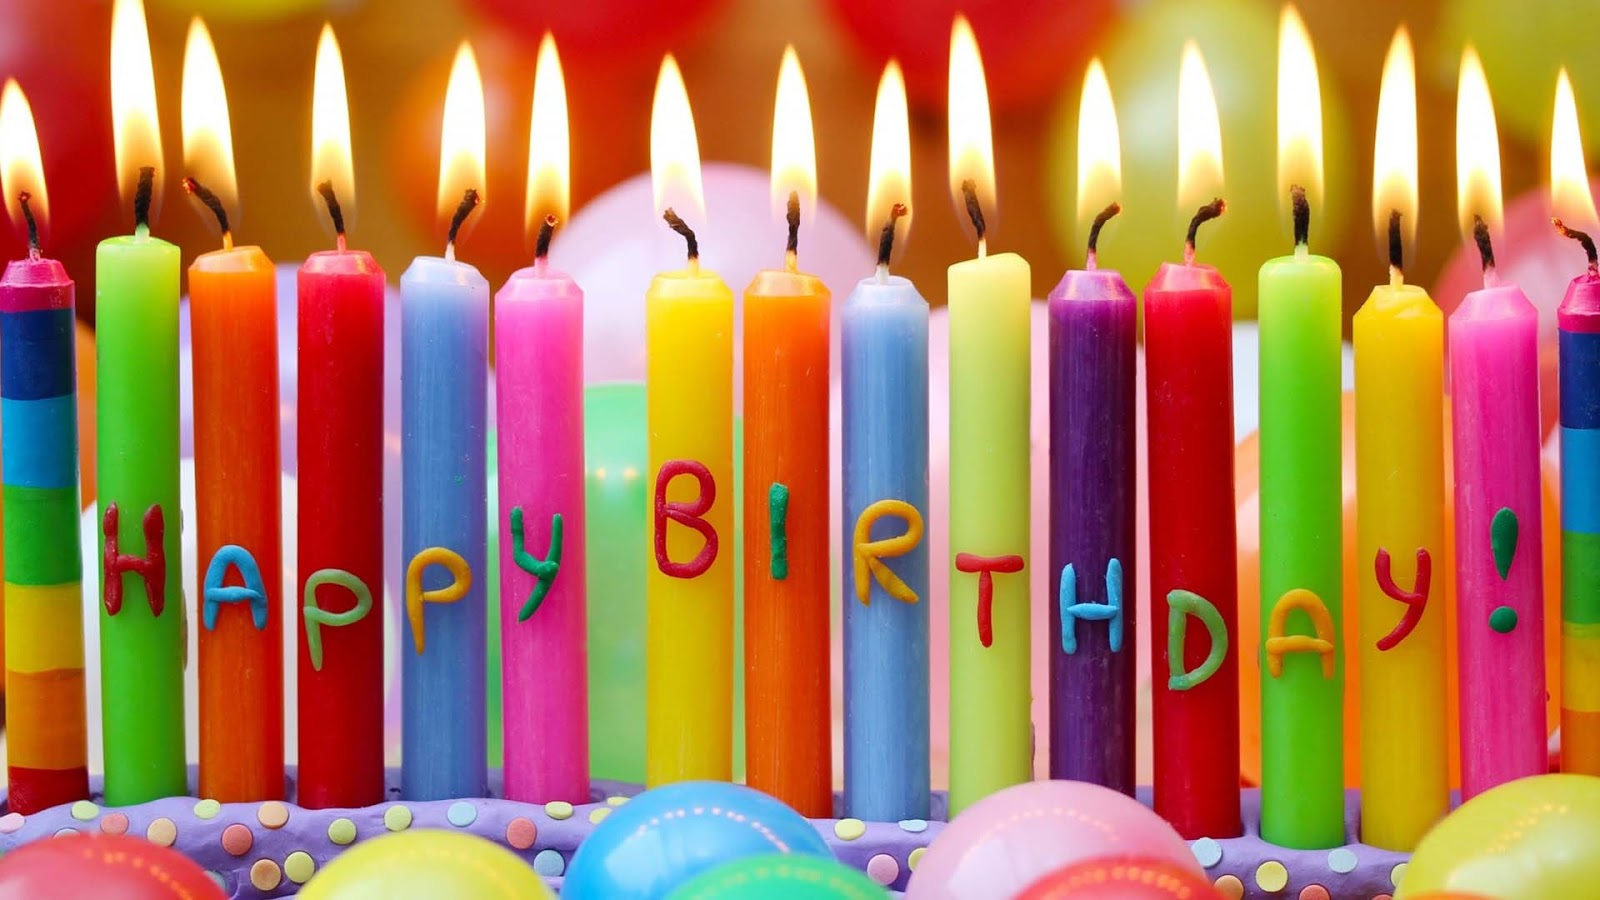 happy birthday greetings hd images ; happy-birth-day-candles-wallpapers-hd